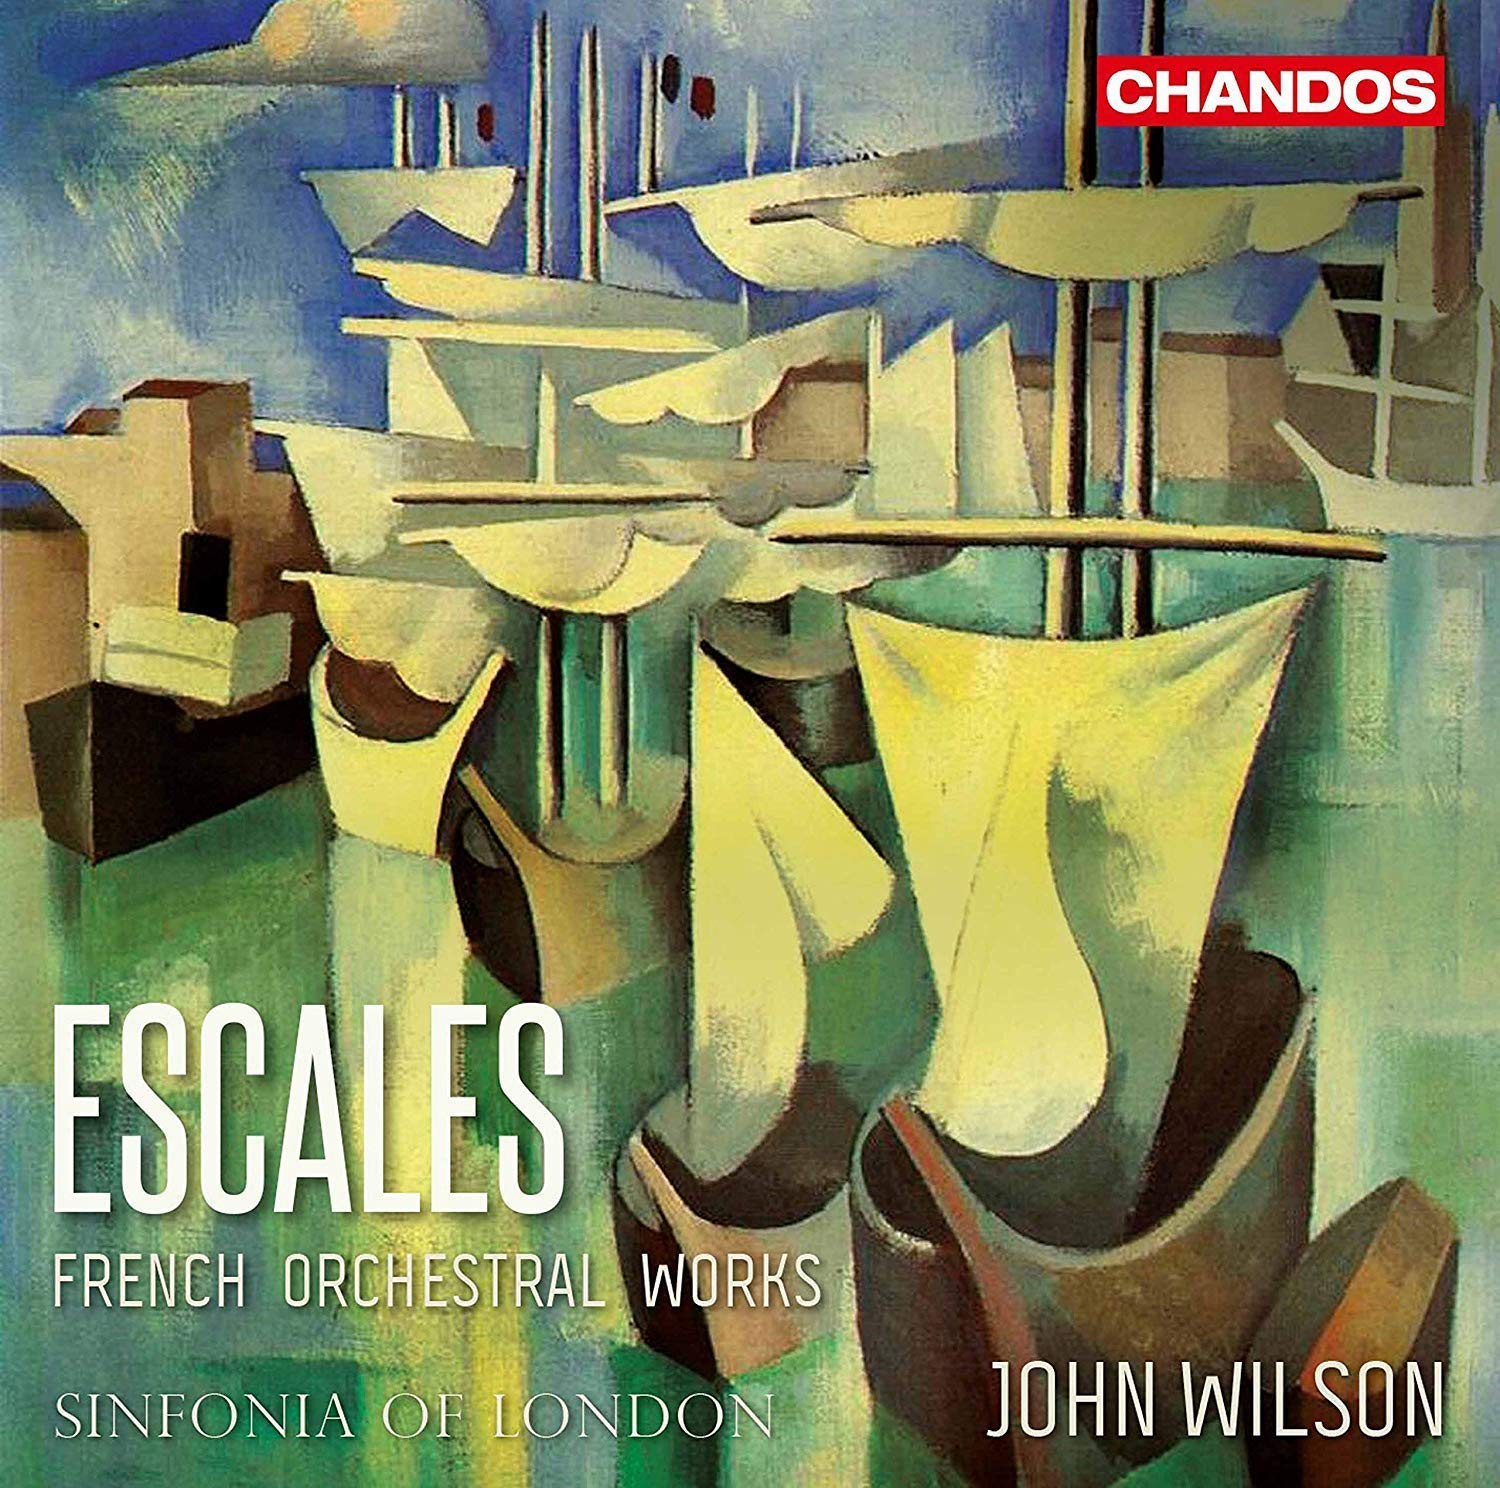 CHSA5252. Escales: French Orchestral Works